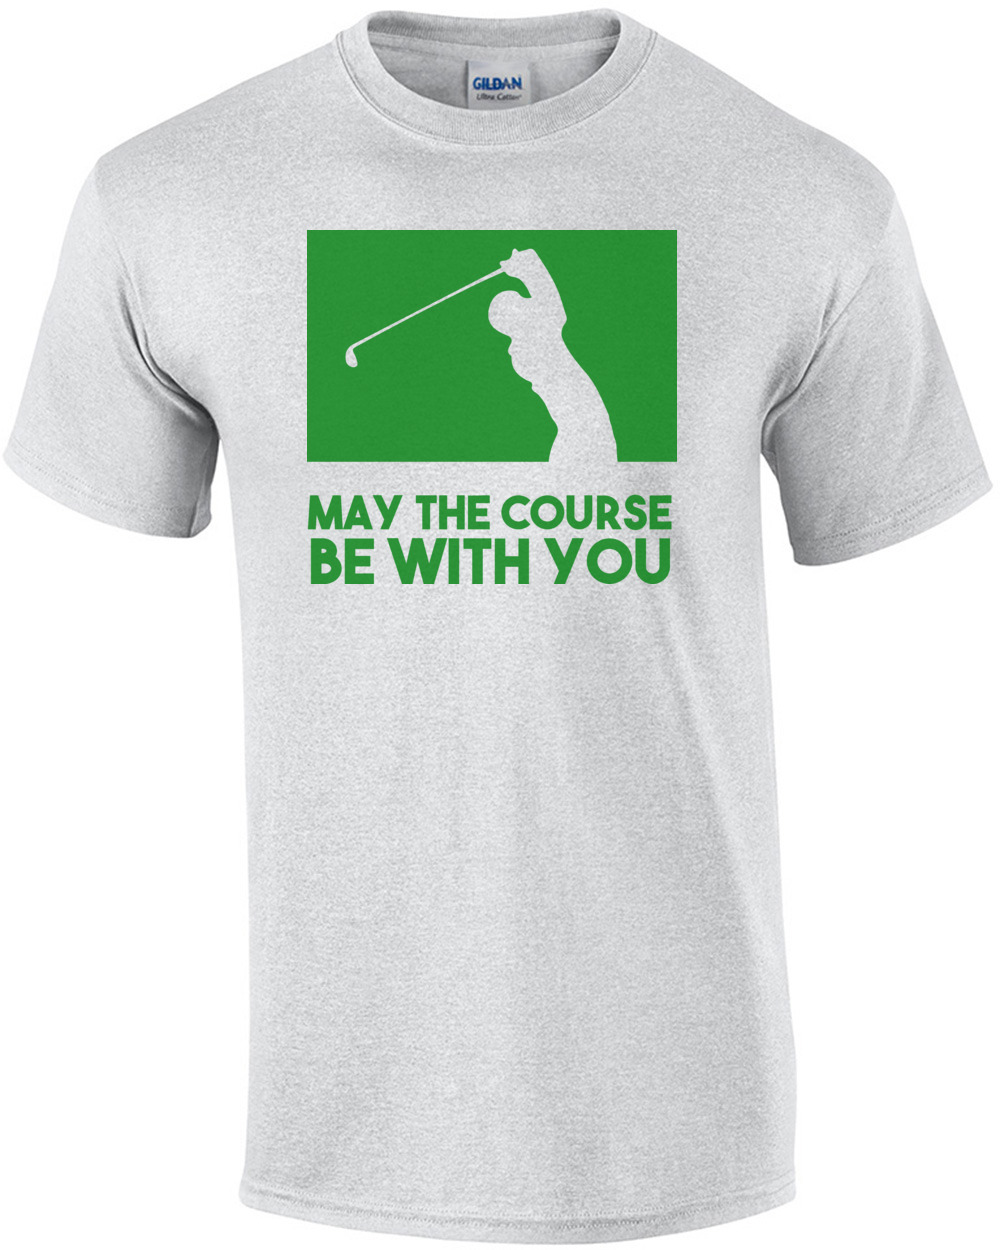 21f22a9a May the course be with you - Golf T-Shirt shirt